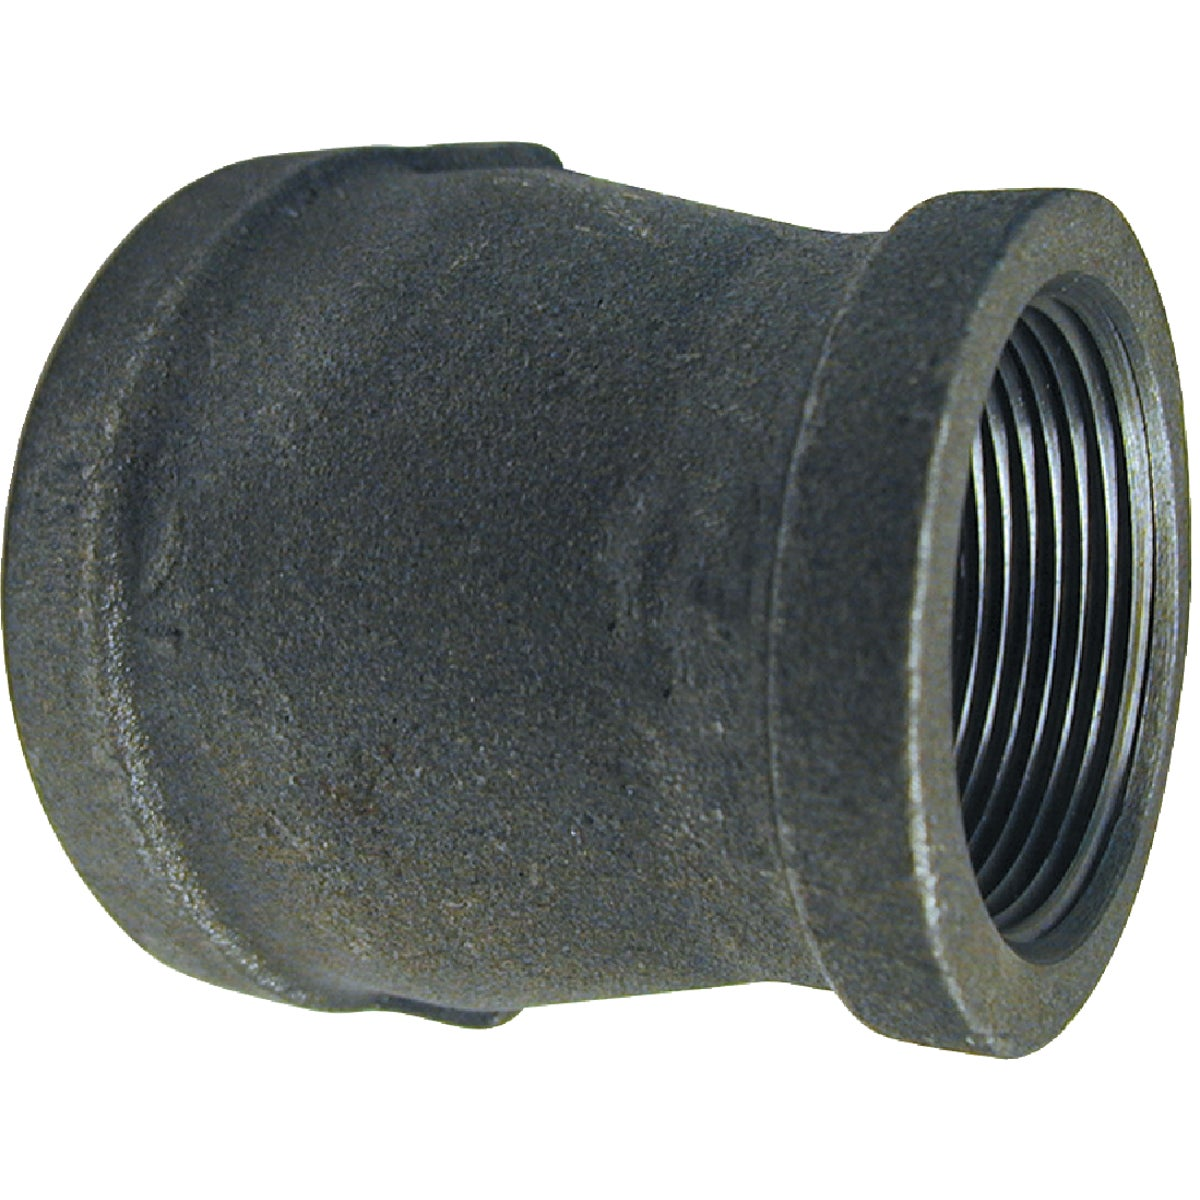 2X1-1/4 BLACK COUPLING - 521-386BG by Mueller B K